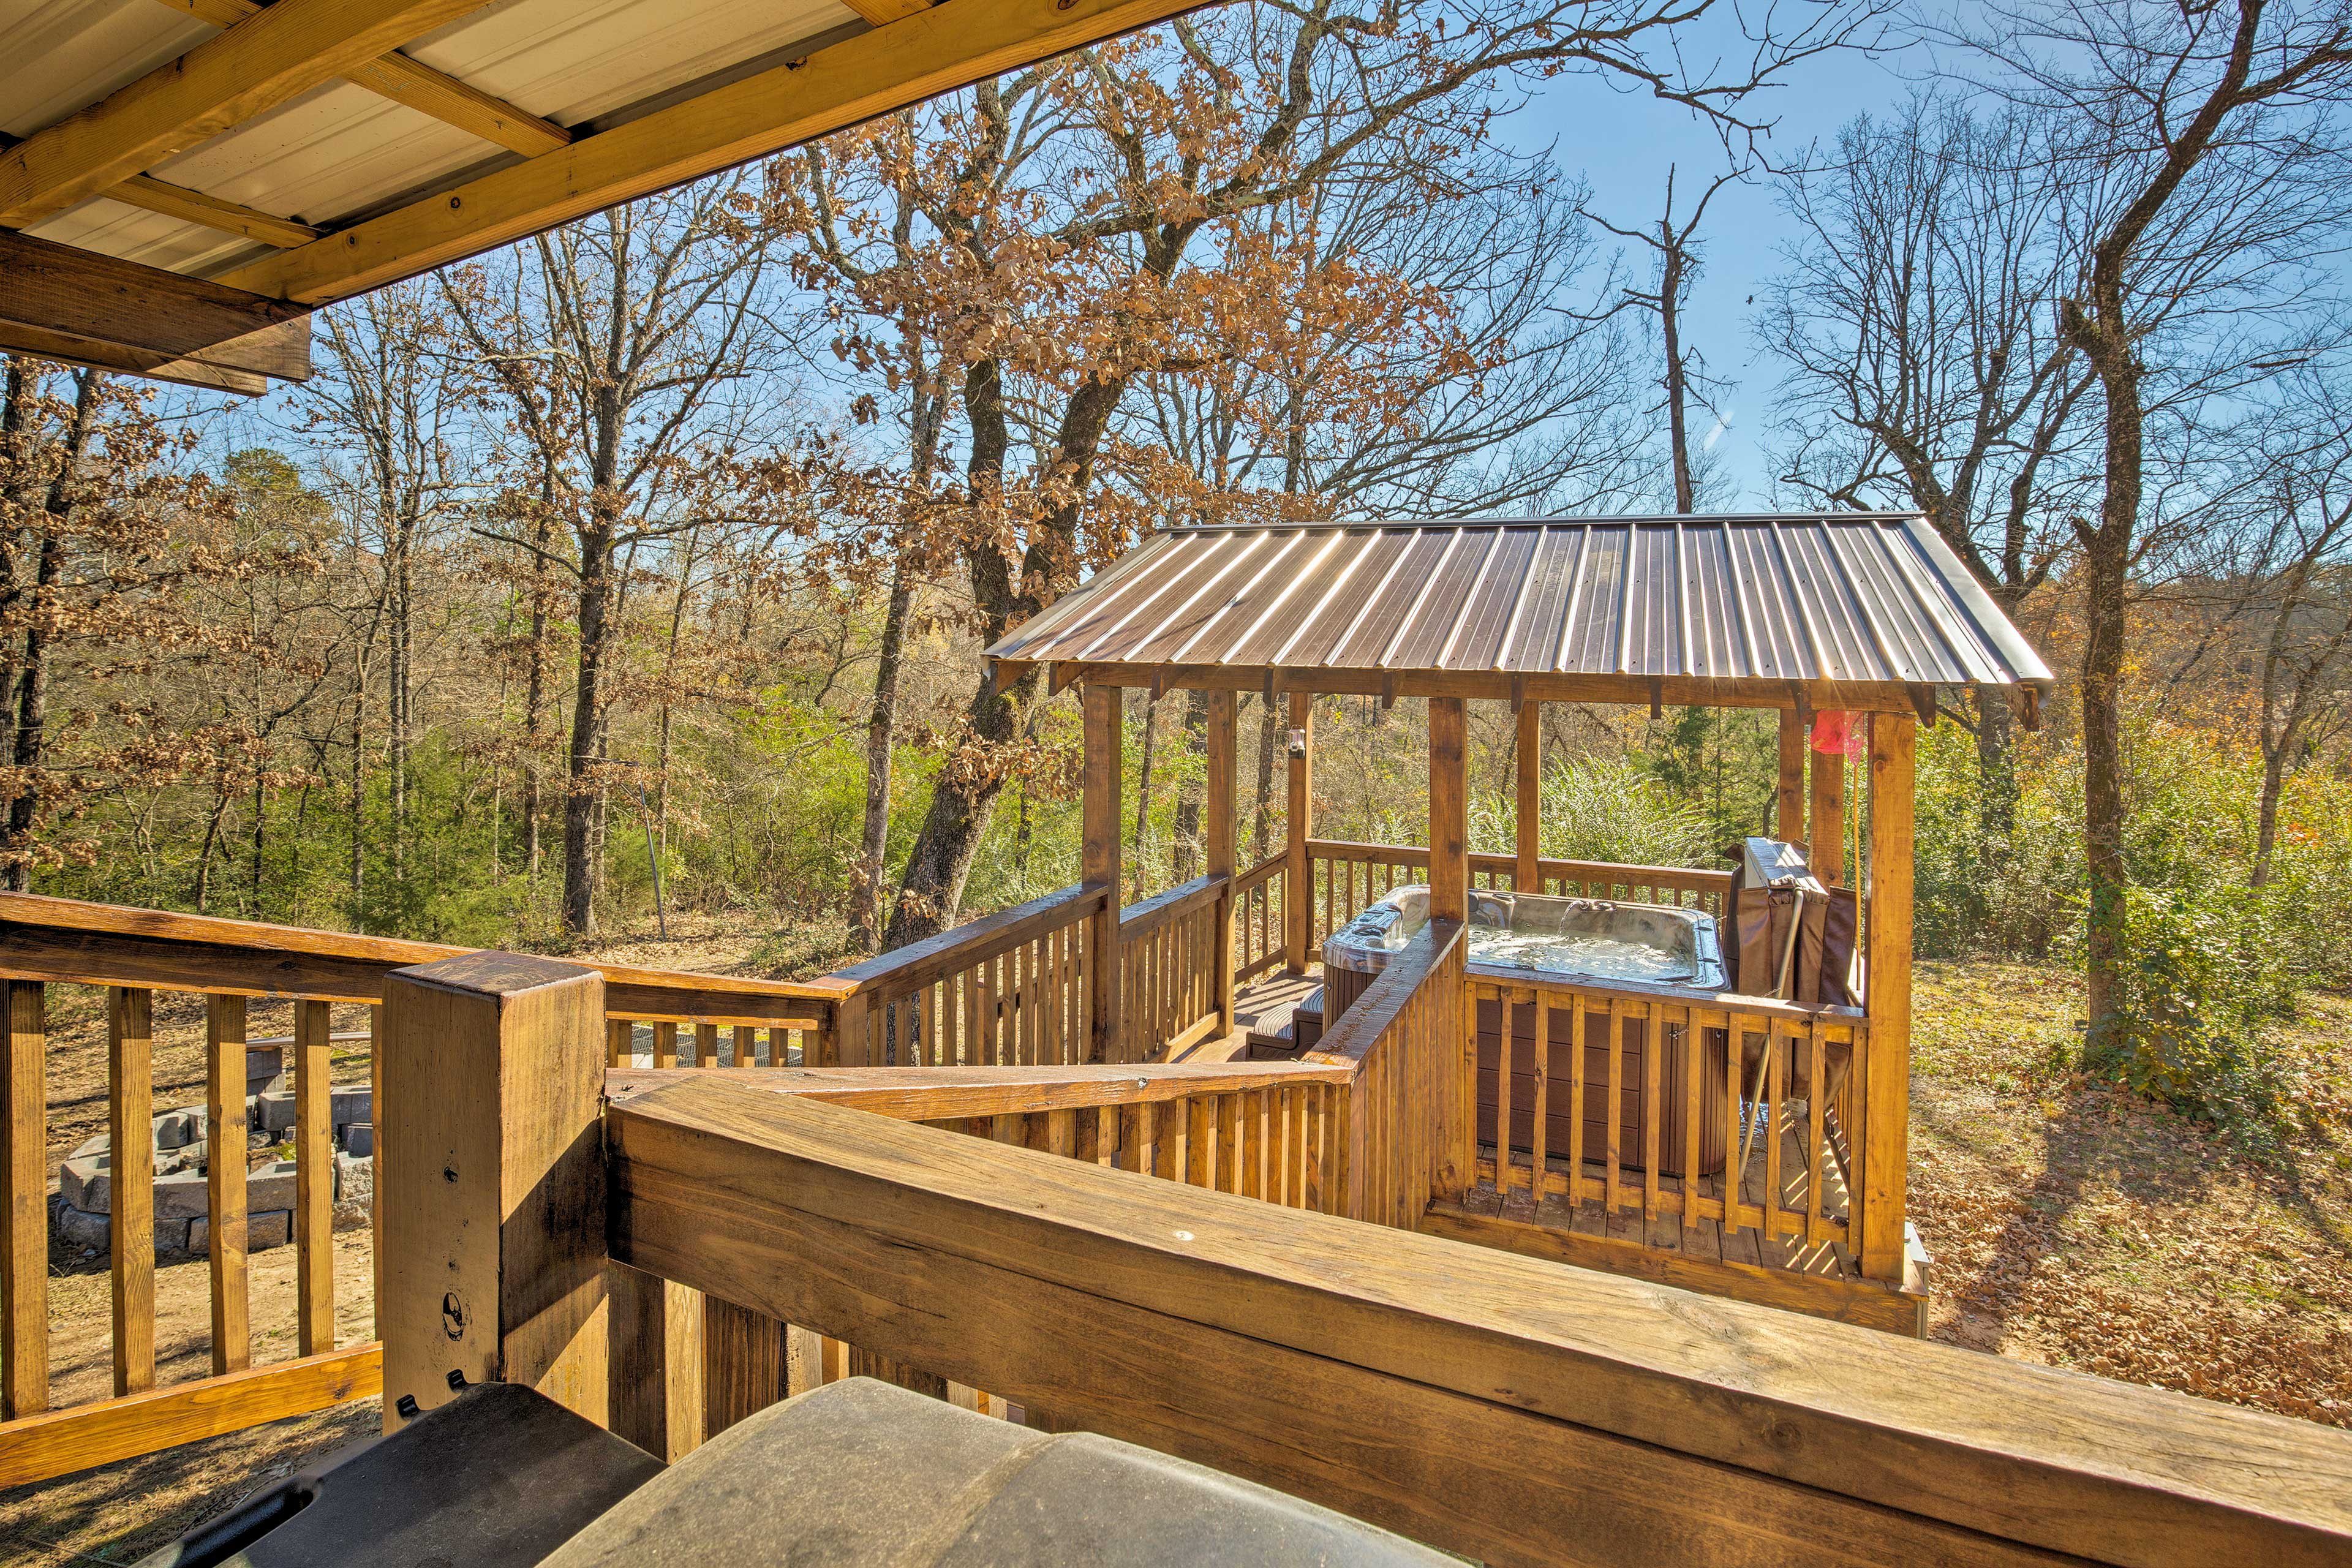 You'll love gazing off into the peaceful Oklahoma views.